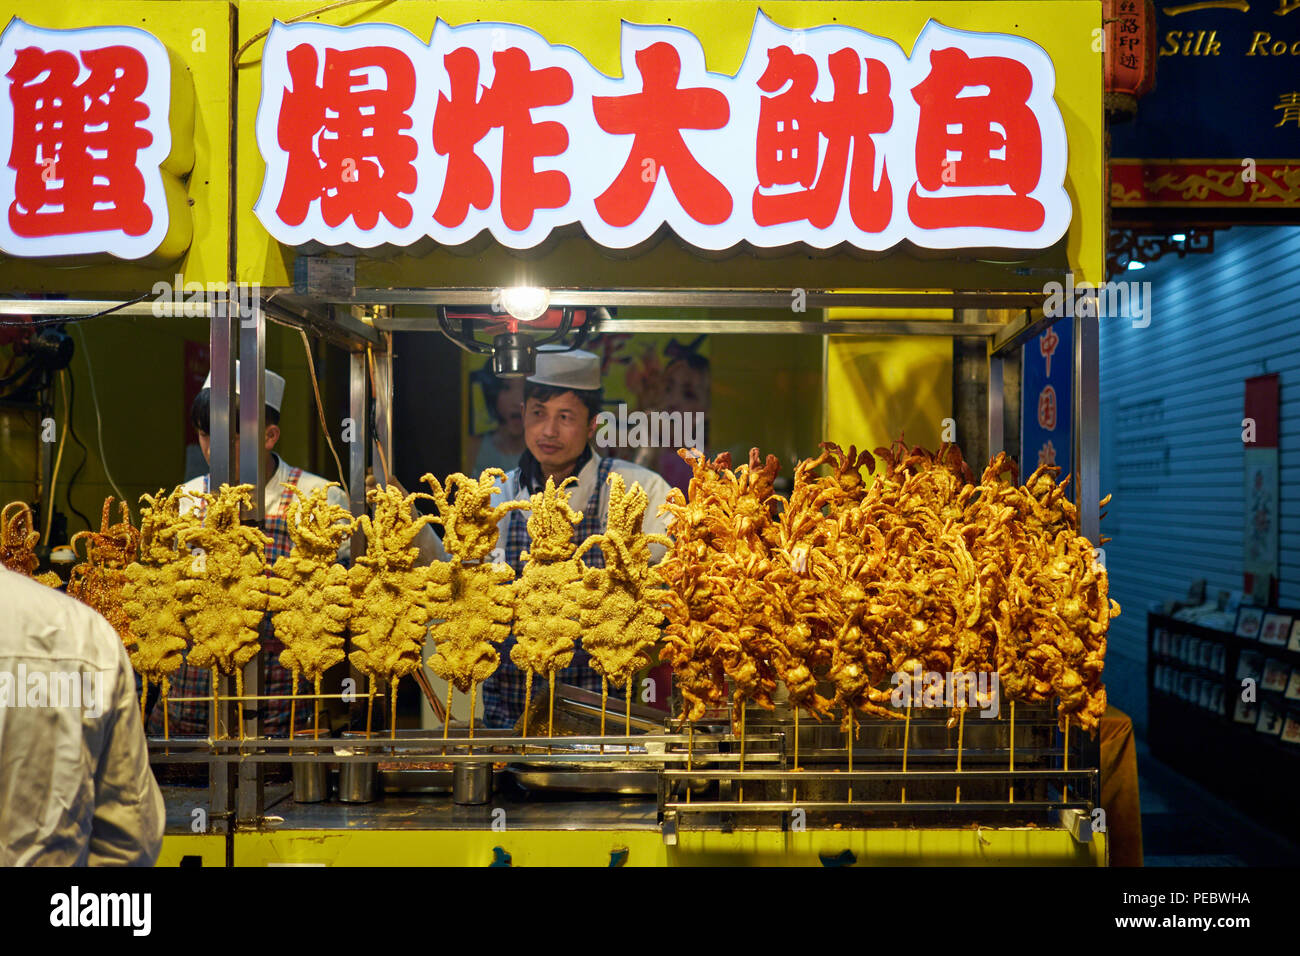 Fried and Grilled Squid on a Stick Sold by a Street Vendor, Muslim Quarter, Xi'an, Shaanxi, China - Stock Image